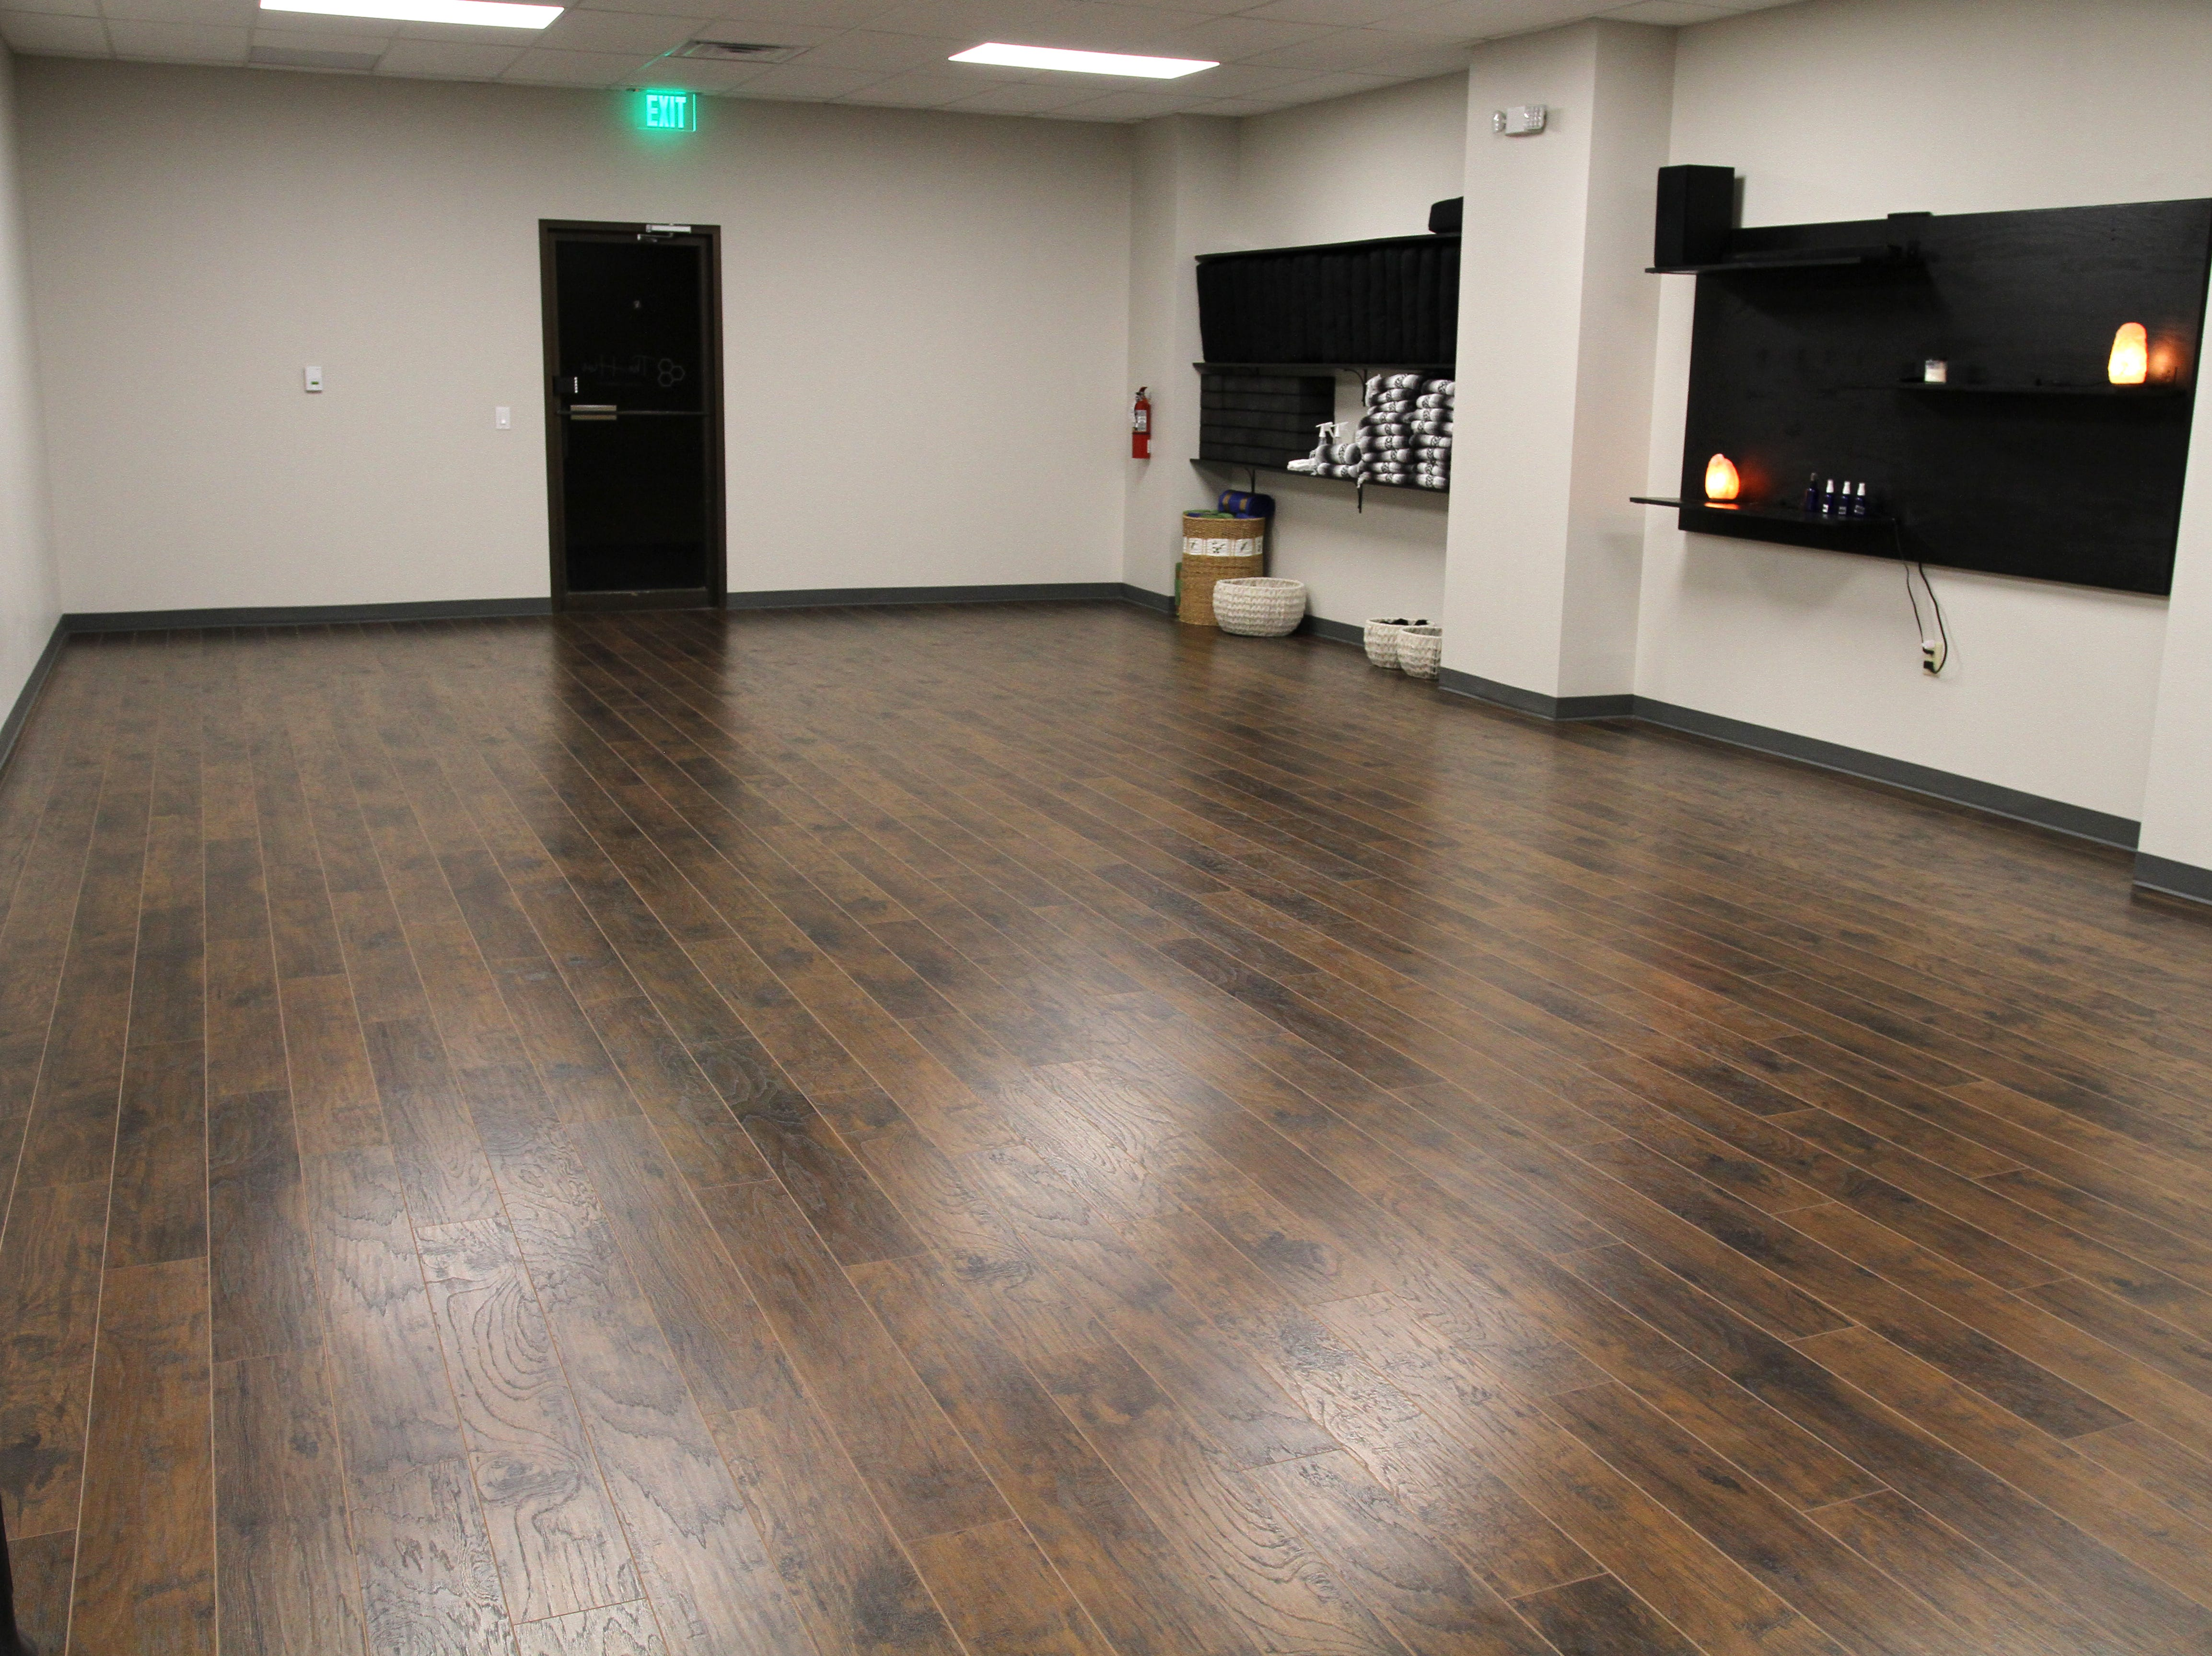 The Hive yoga studio in downtown Wichita Falls at 807 8th Street.